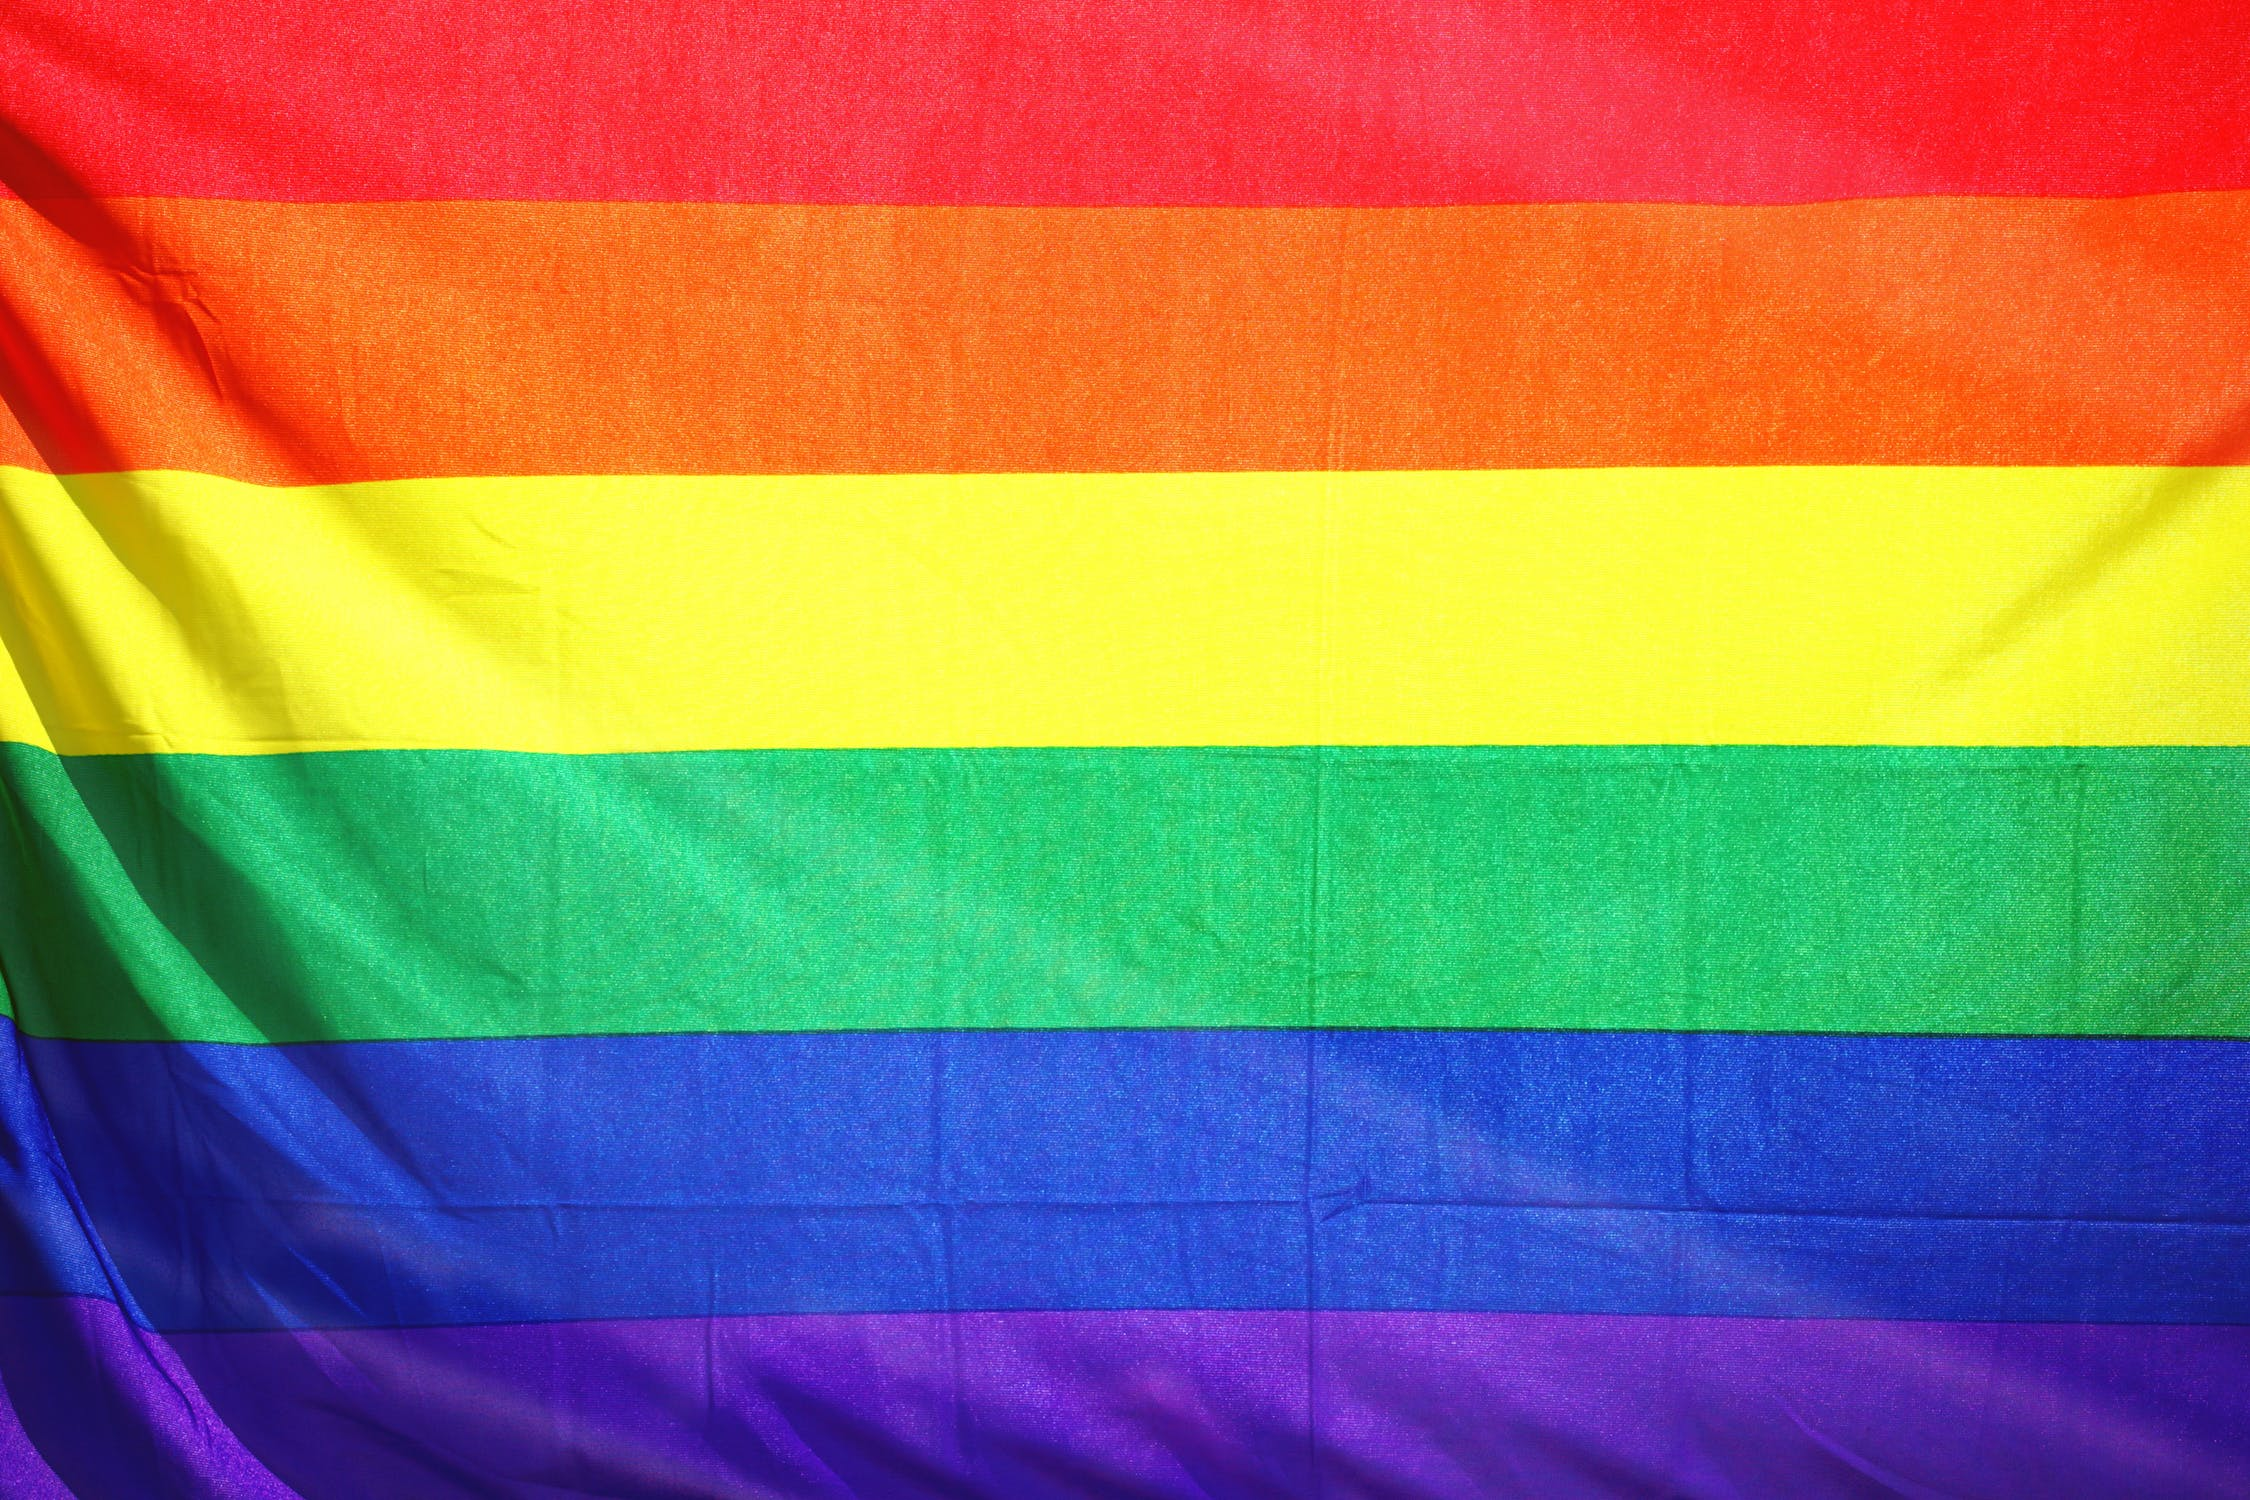 Murphy's latest distraction from property taxes: embassy pride flags!